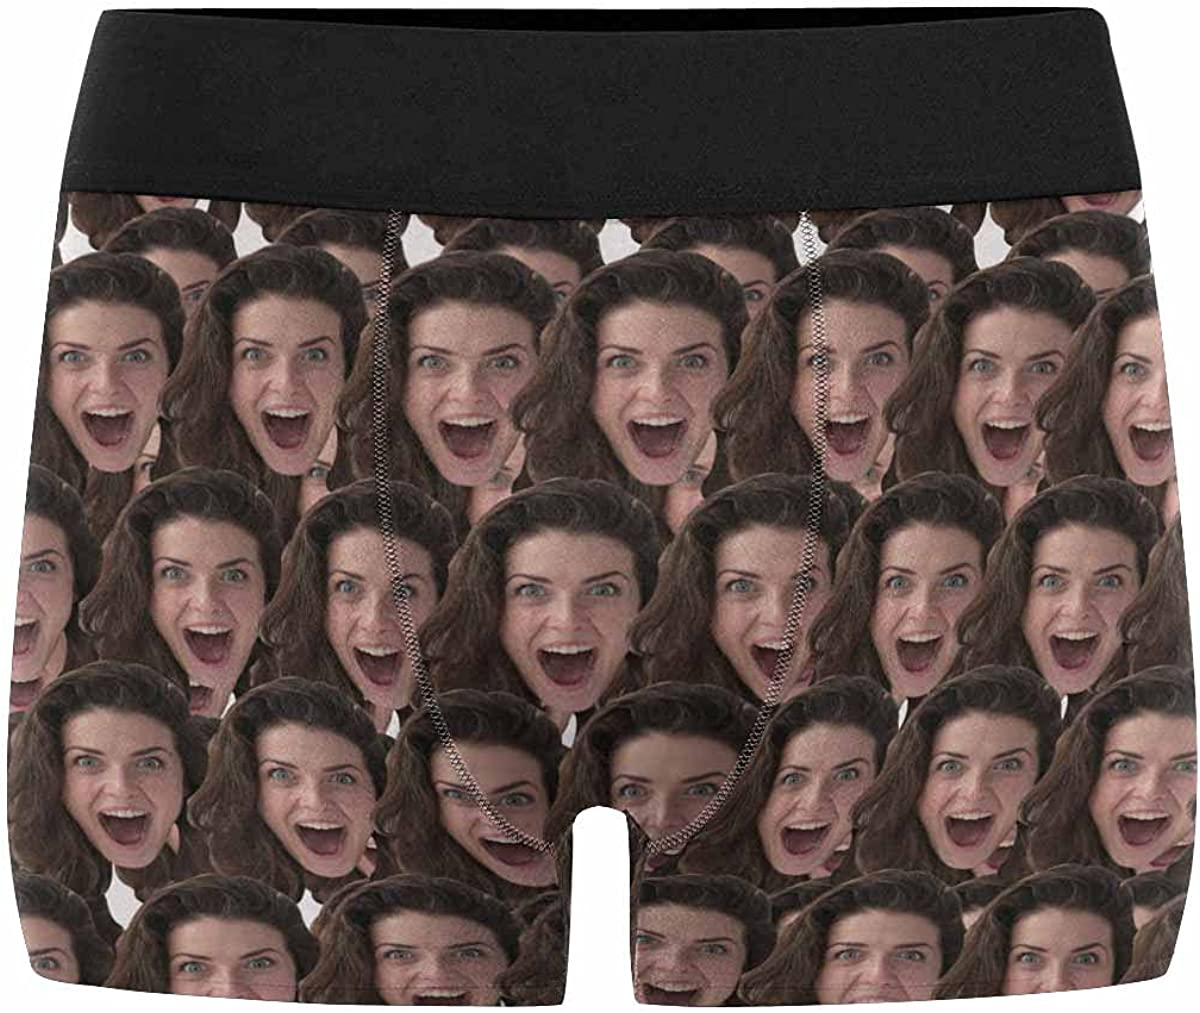 Custom Multi Face with Men's Underwear Personalized Your Photo Design on Boxer Briefs Customized Funny Shorts Gifts for Men